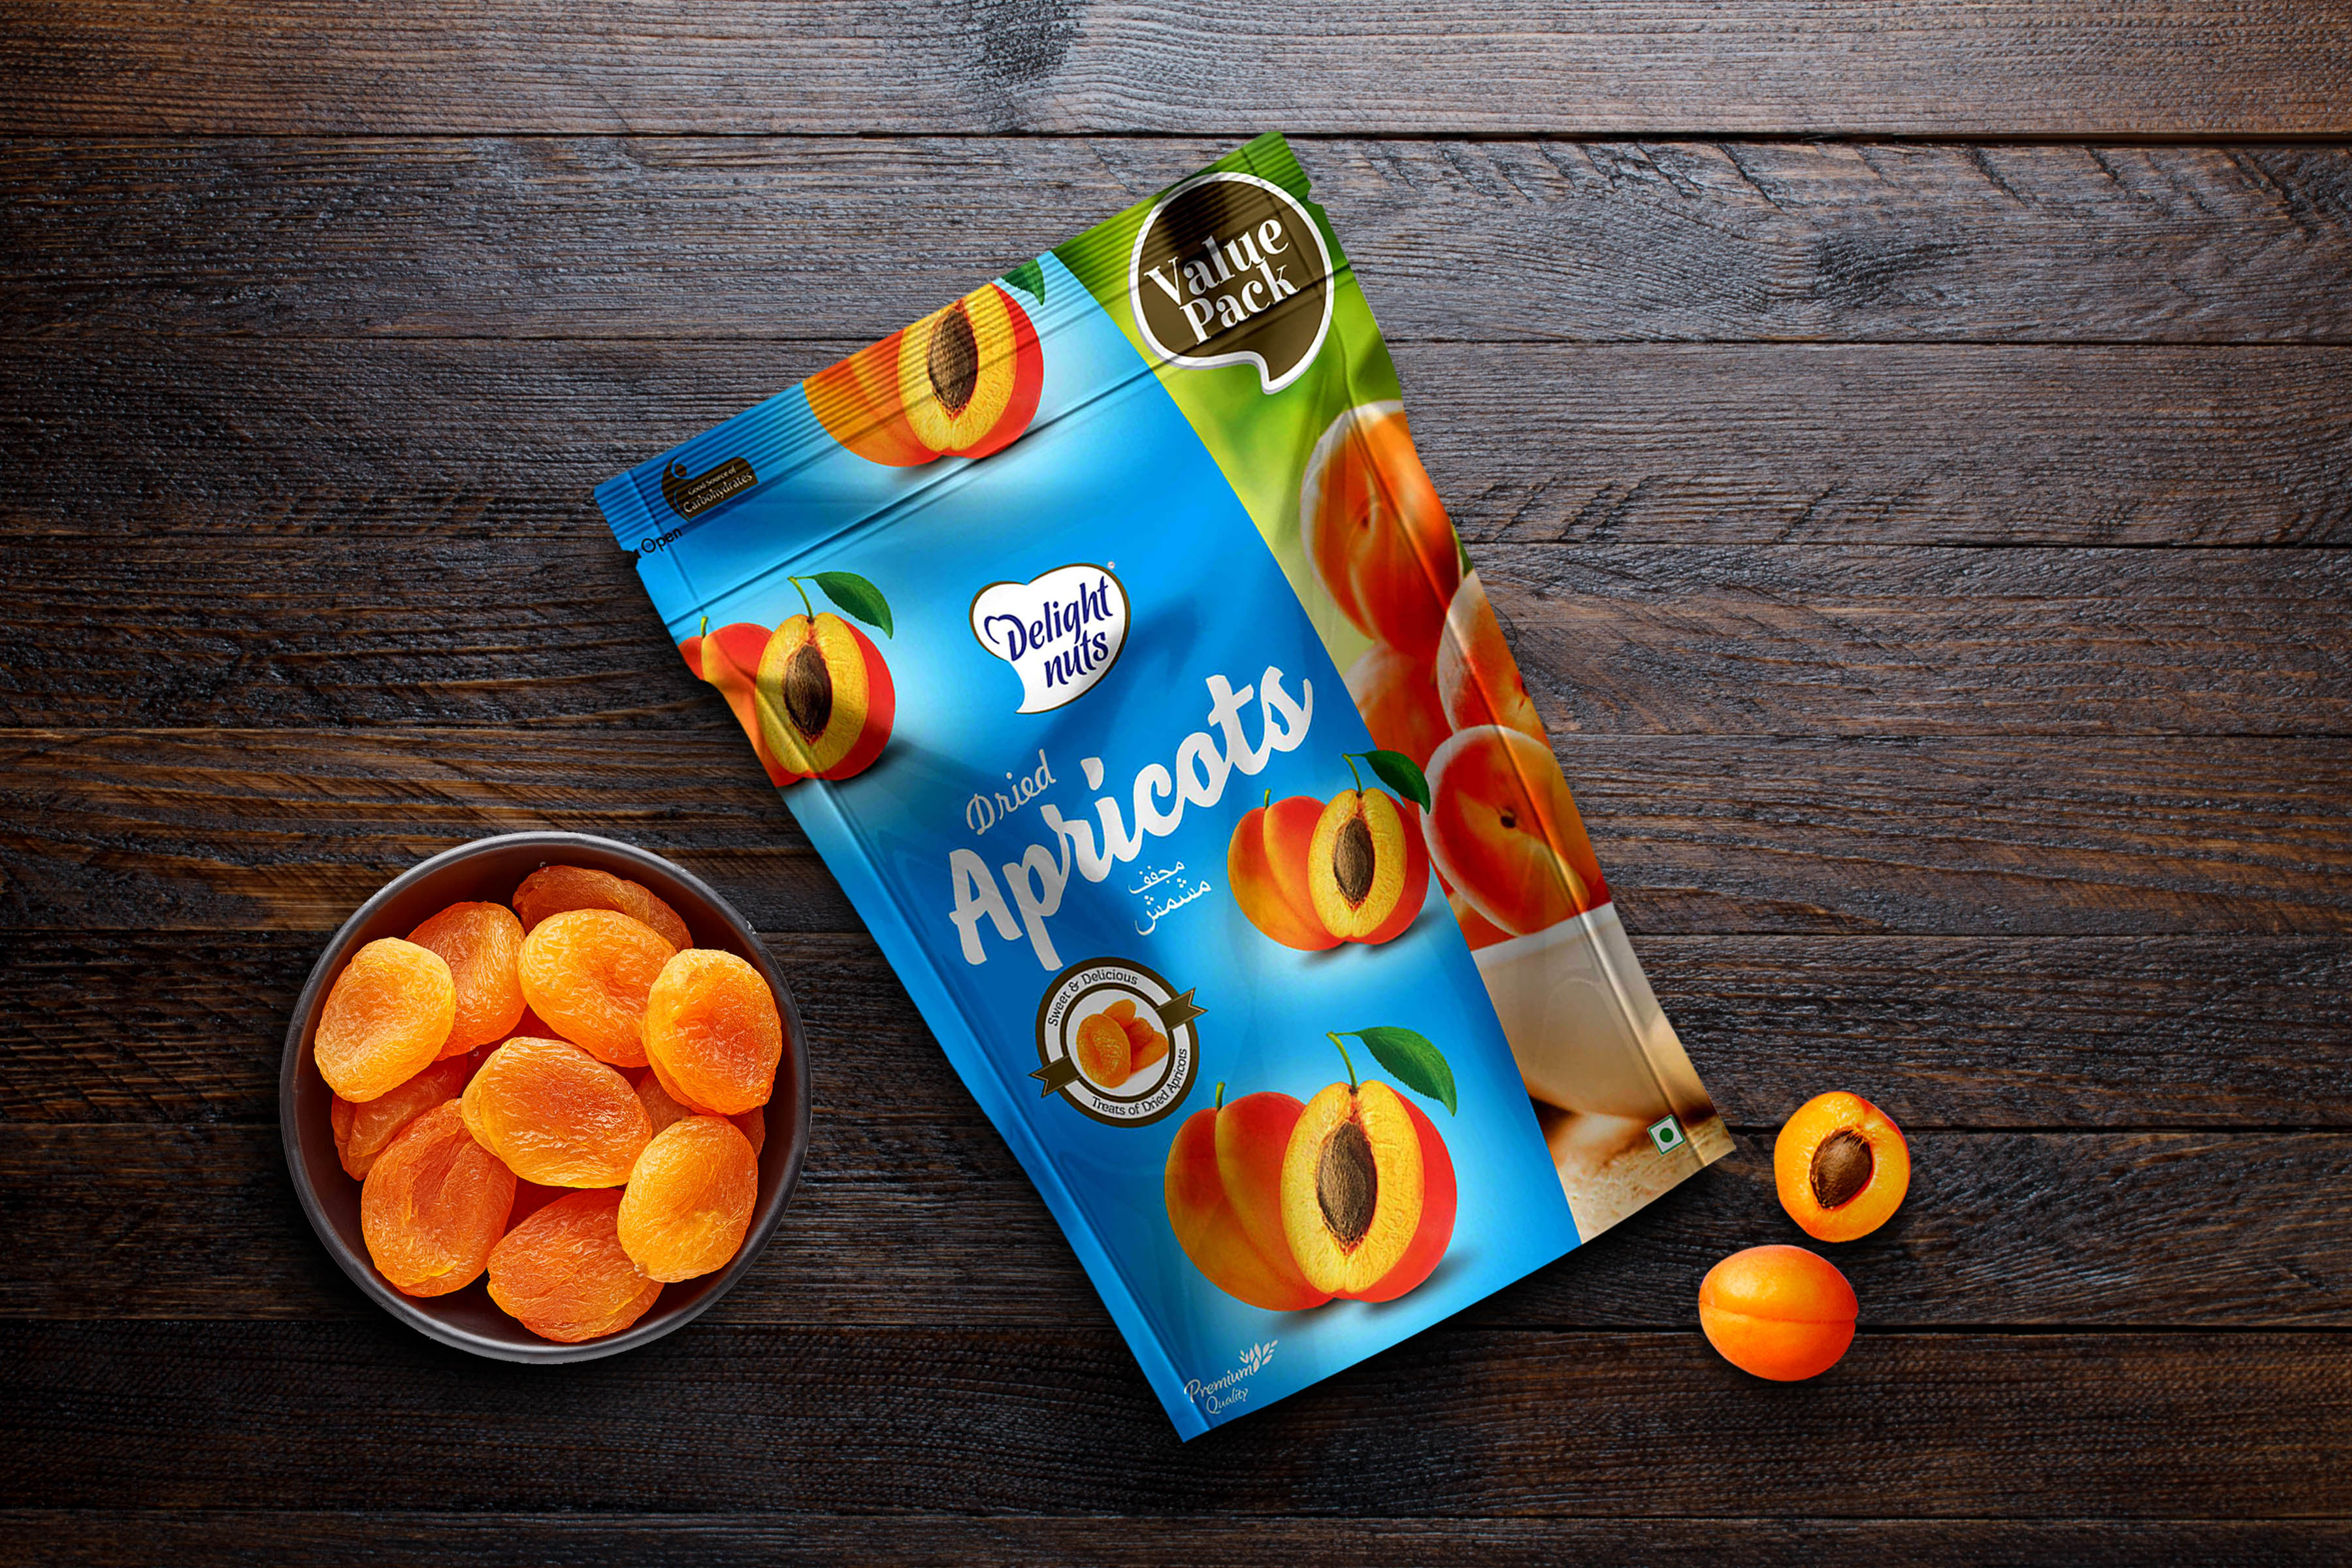 Delight Nuts - Dried Apricots